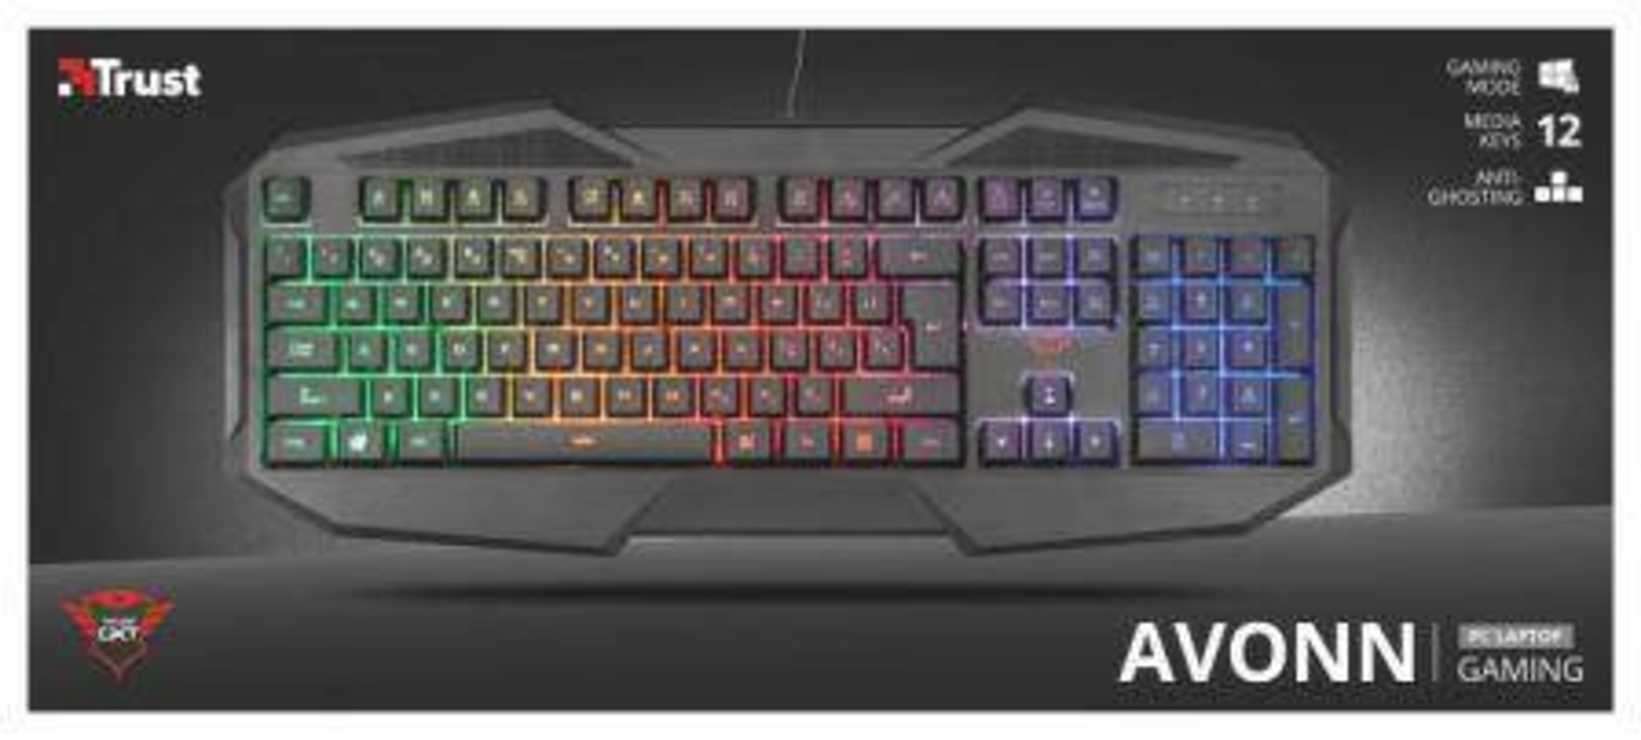 CLAVIER GAMING GXT-830 RETRO ECLAIRAGE tr22281-3small